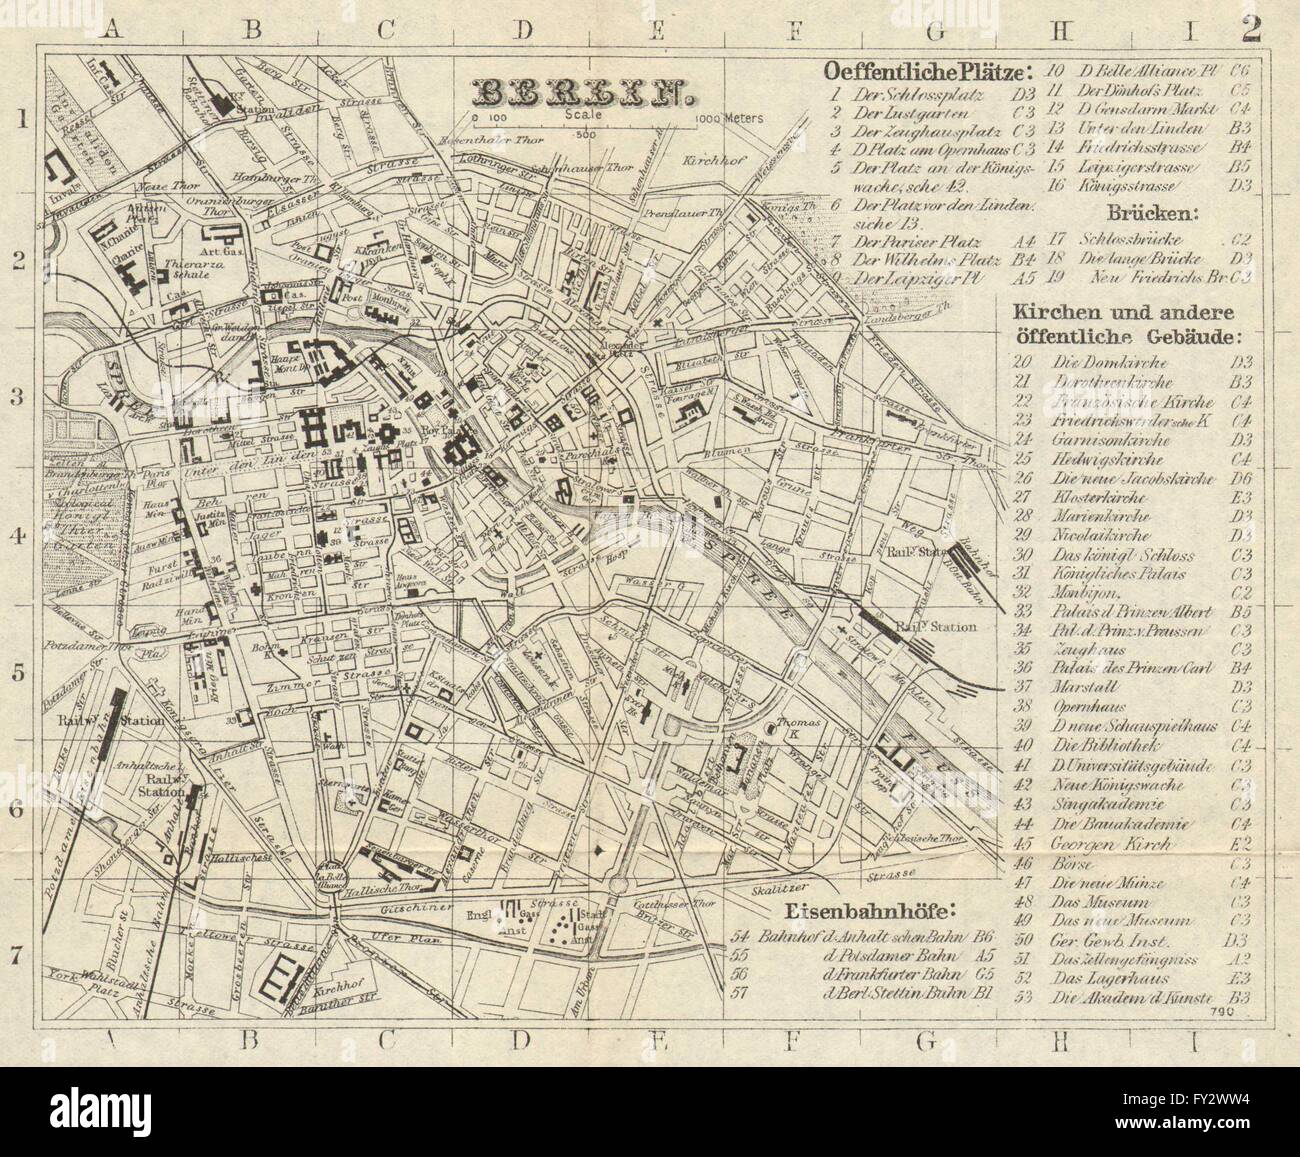 BERLIN Antique Town Plan City Map Germany BRADSHAW Stock - Germany cities towns map